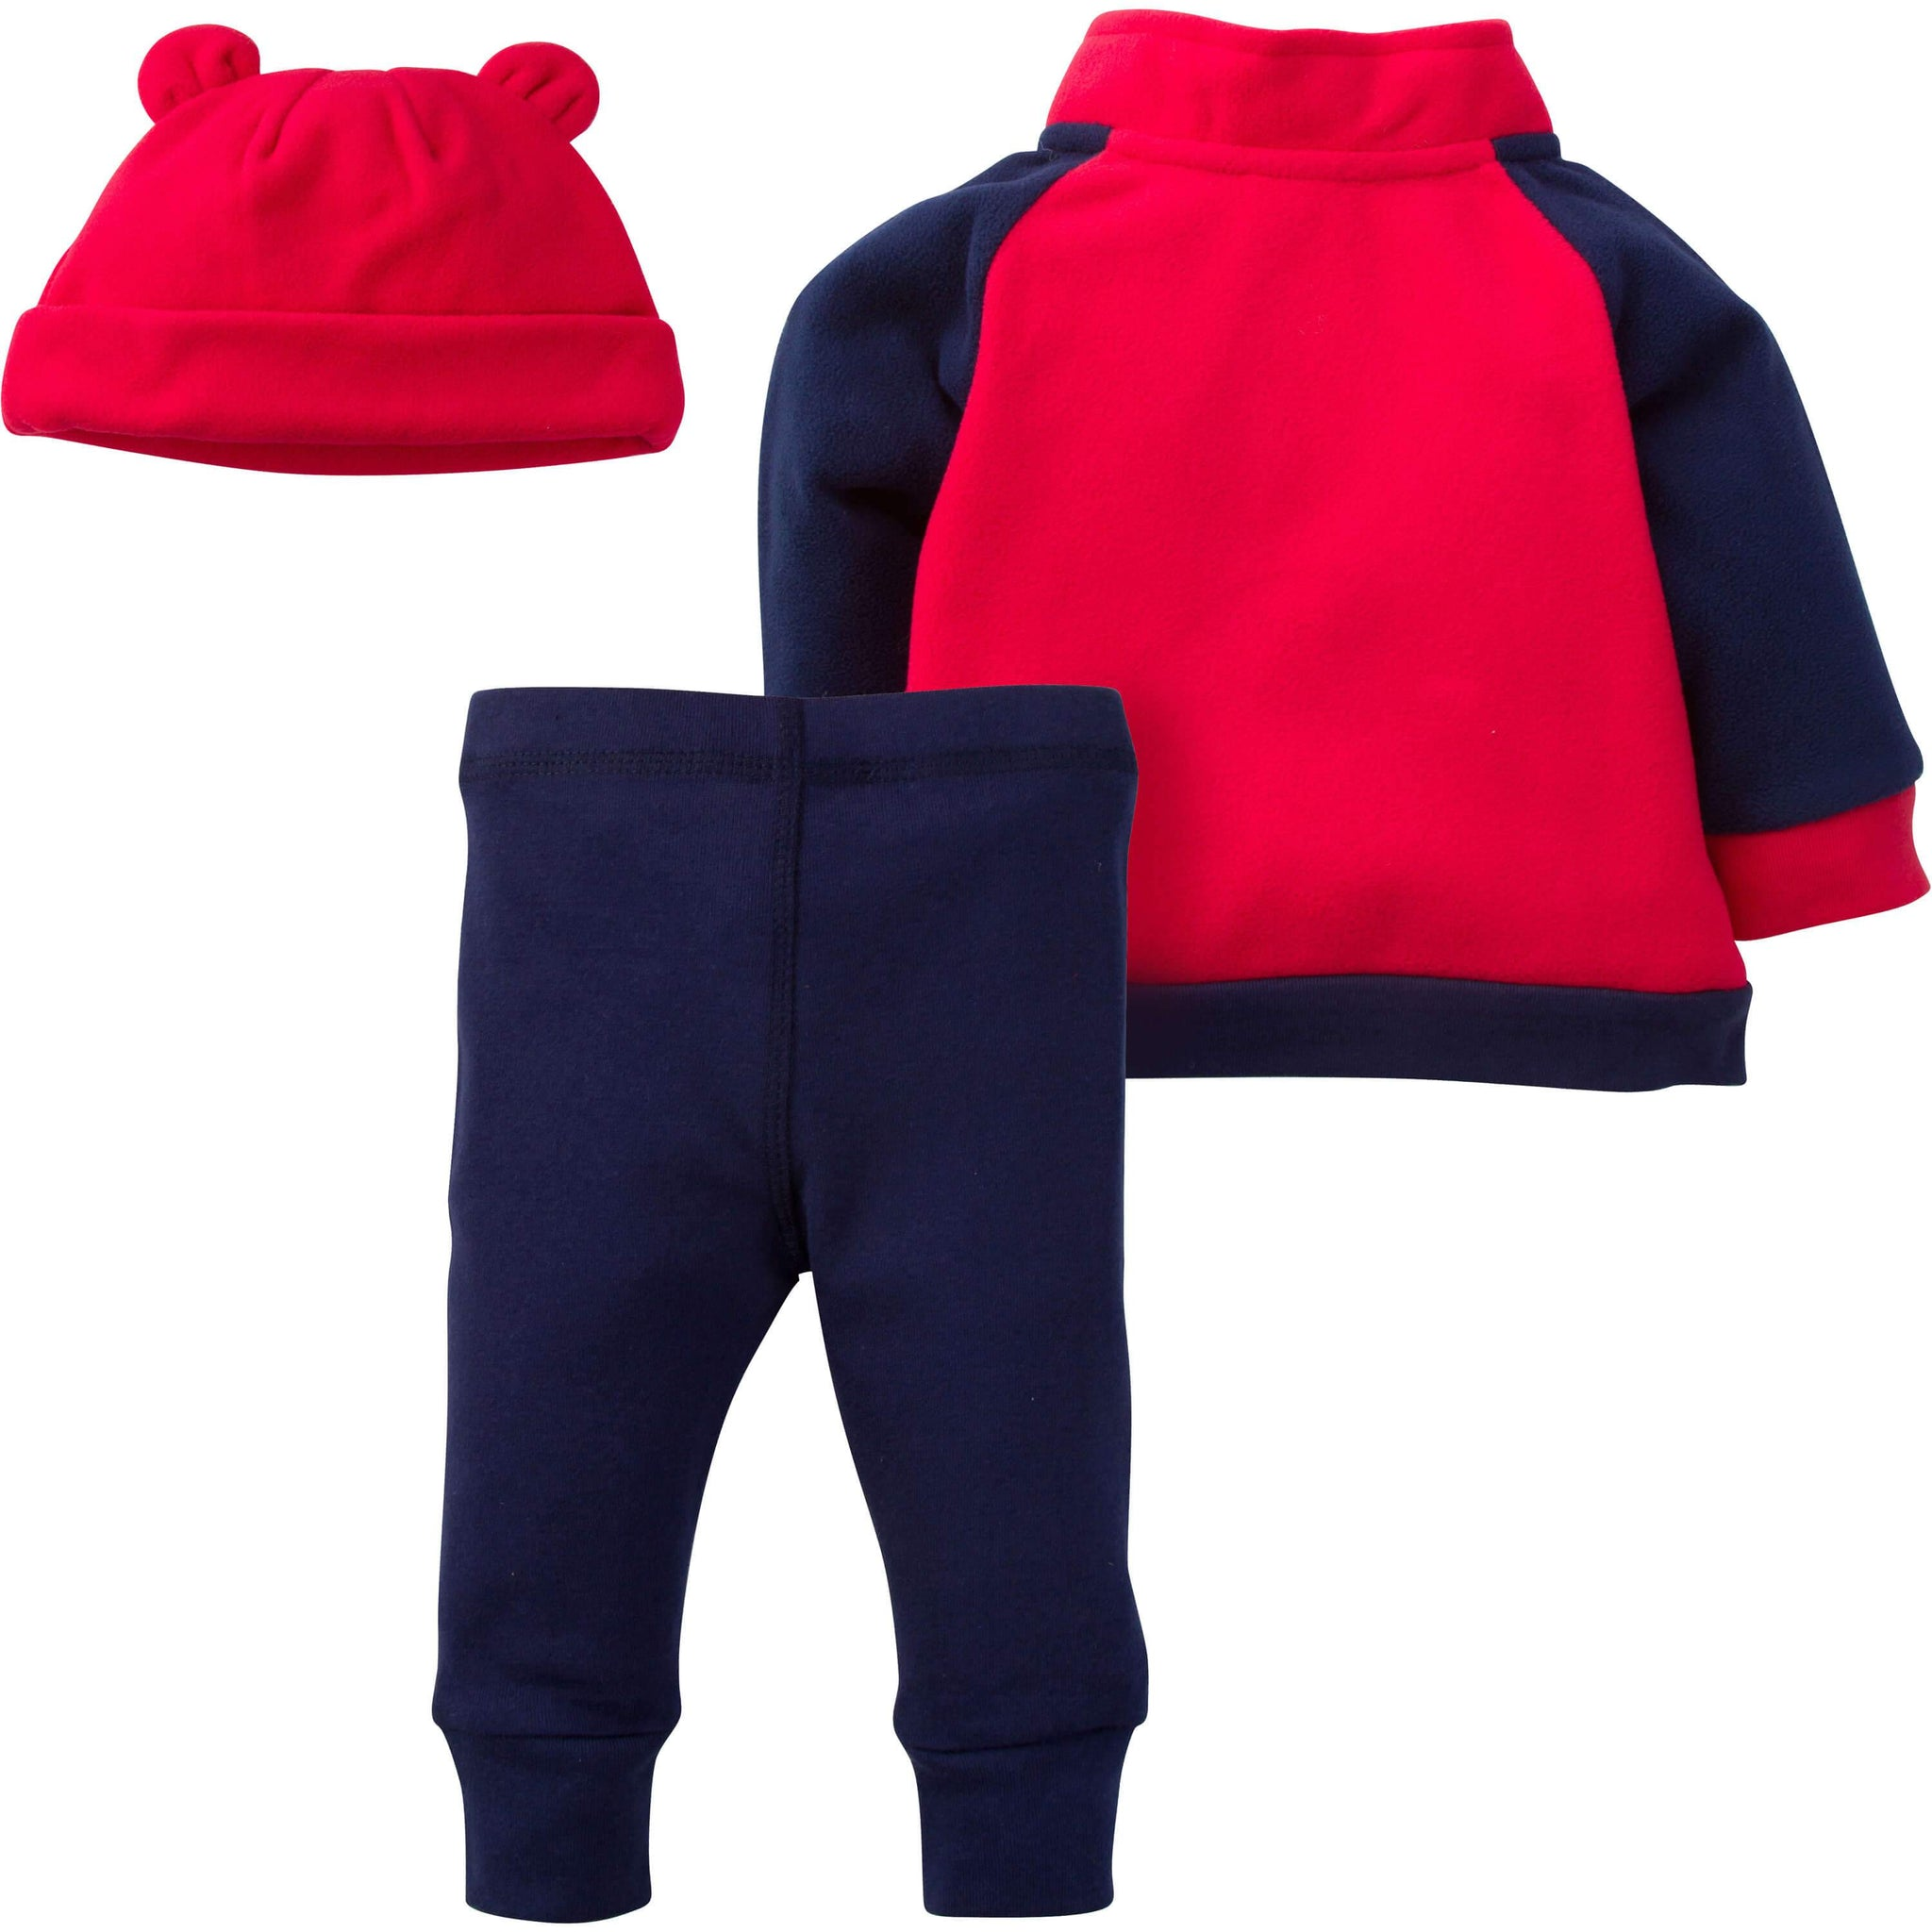 3-Piece Boys Football Microfleece Top, Pant & Cap Set